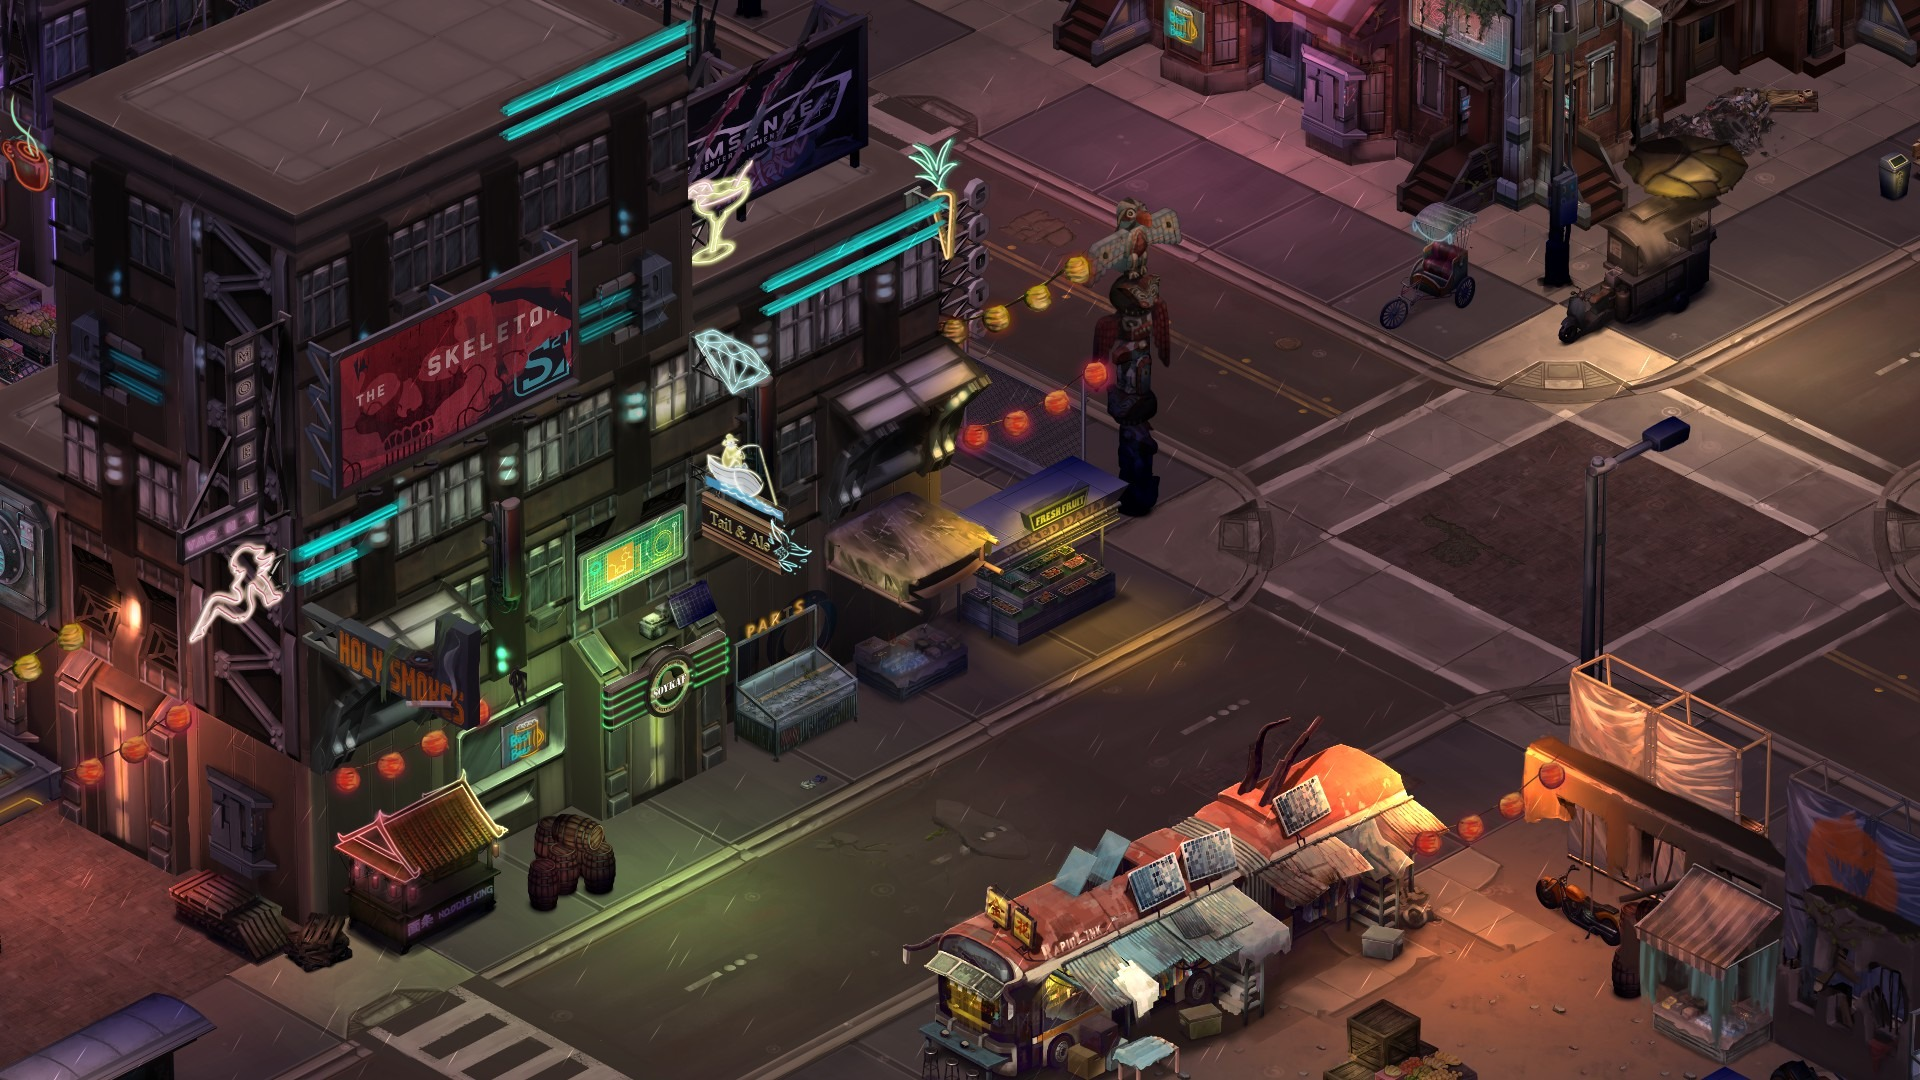 The Shadowrun Trilogy of cyberpunk RPGs is free on GOG this weekend